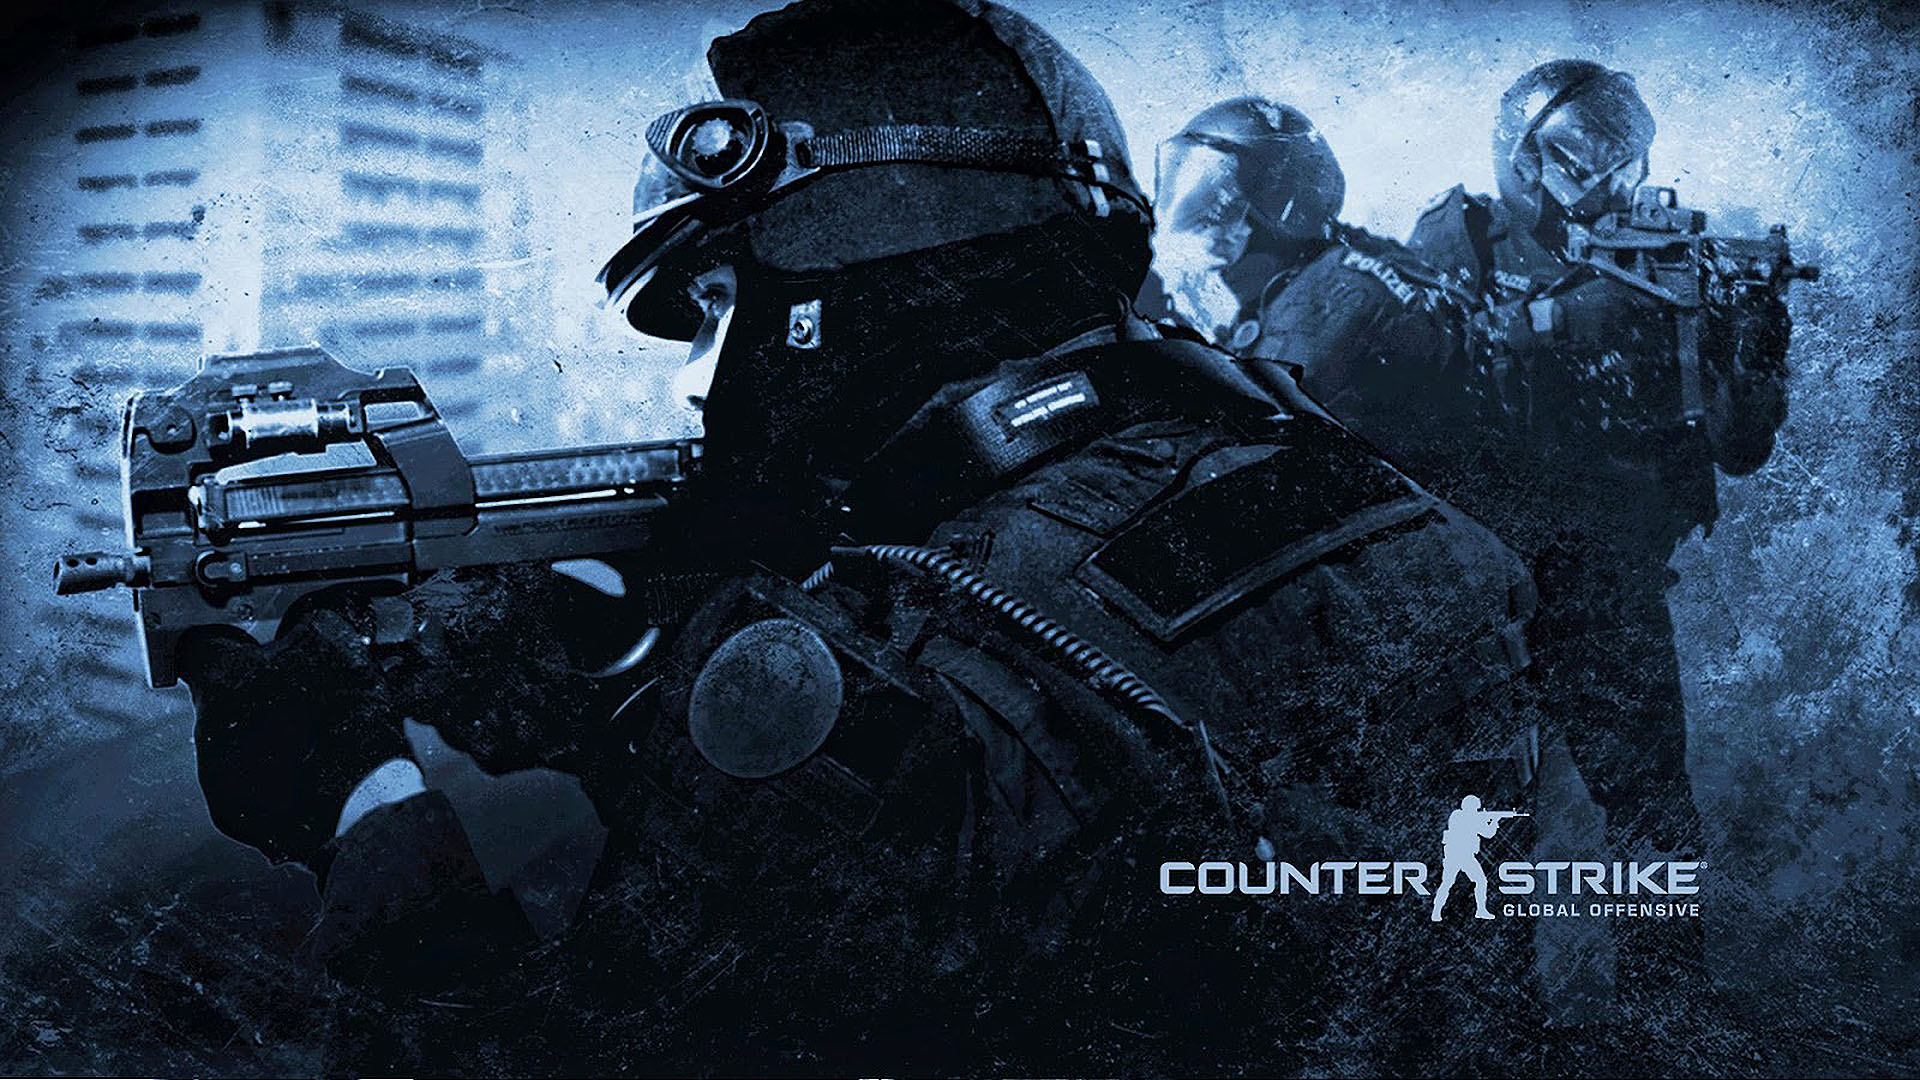 Counter-Strike: Global Offensive telecharger gratuit de PC et Torrent